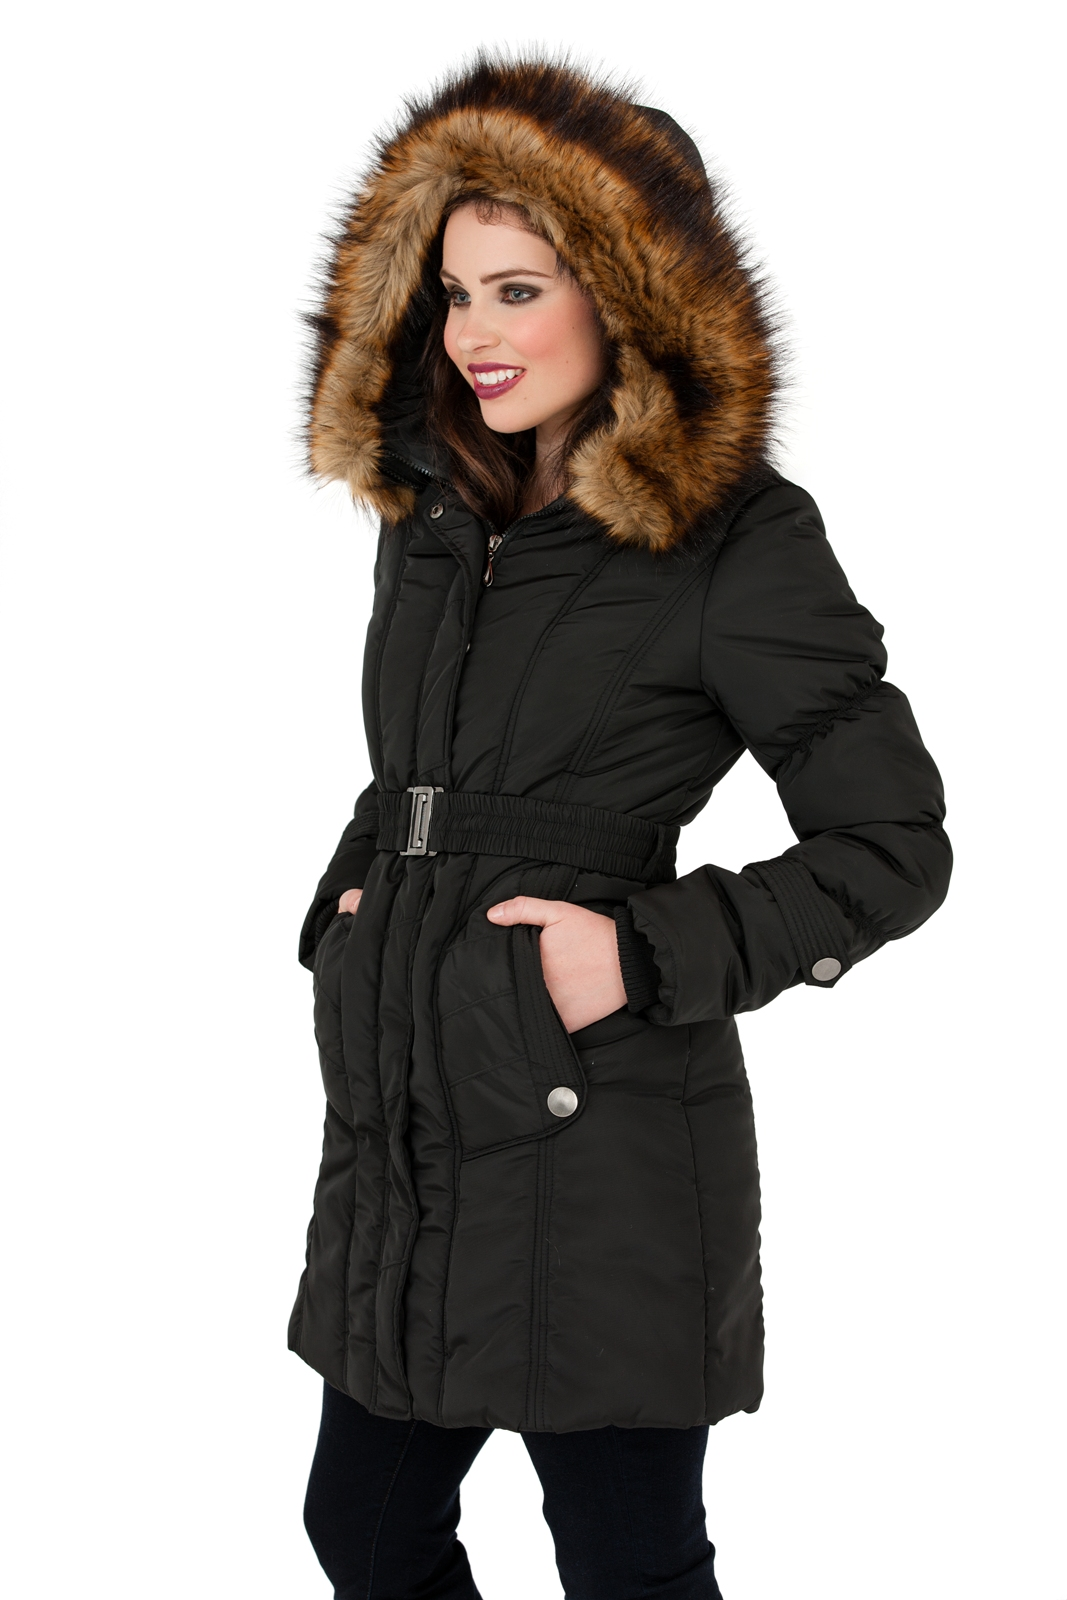 Womens Fur Jackets Images - Reverse Search